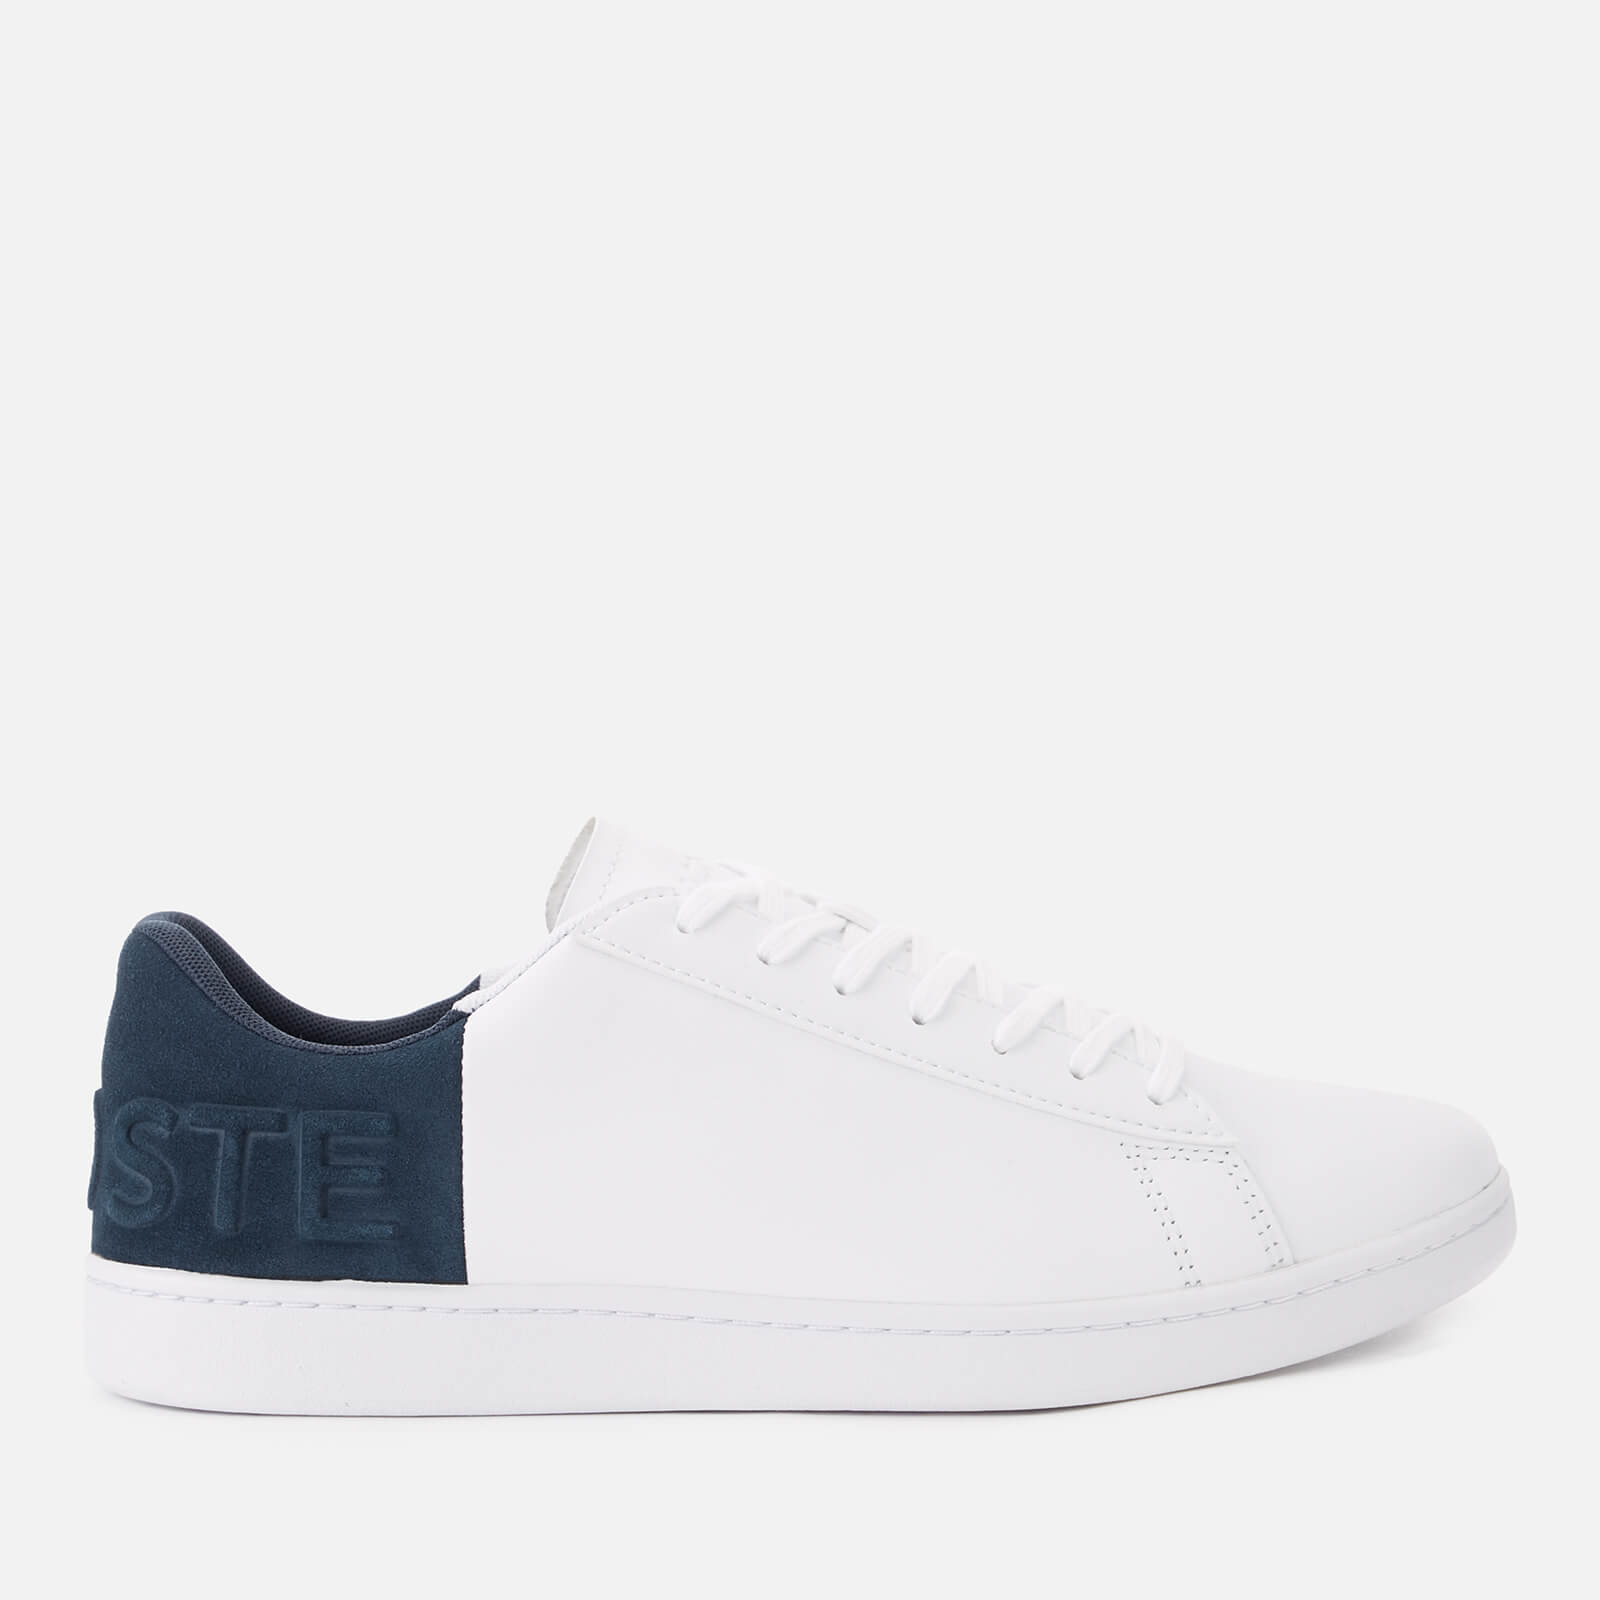 296274b61154c2 Lacoste Men s Carnaby Evo 318 6 Leather Suede Trainers - White Navy - Free  UK Delivery over £50